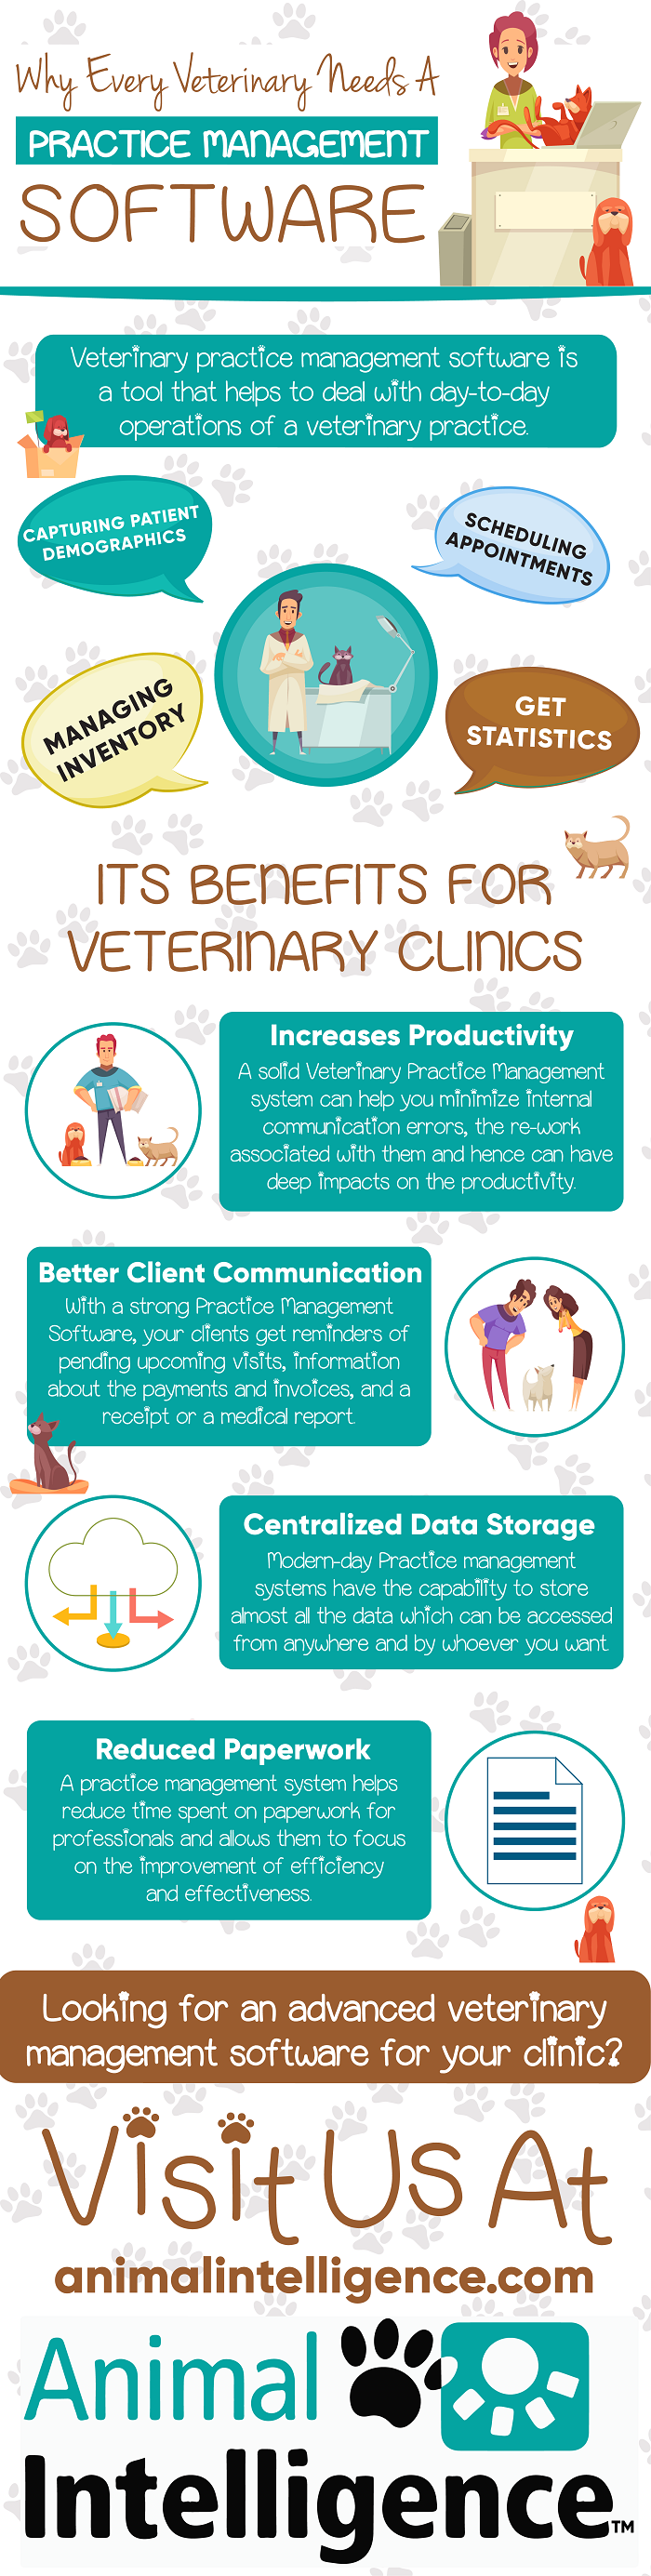 Why Every Veterinary Needs A Practice Management Software